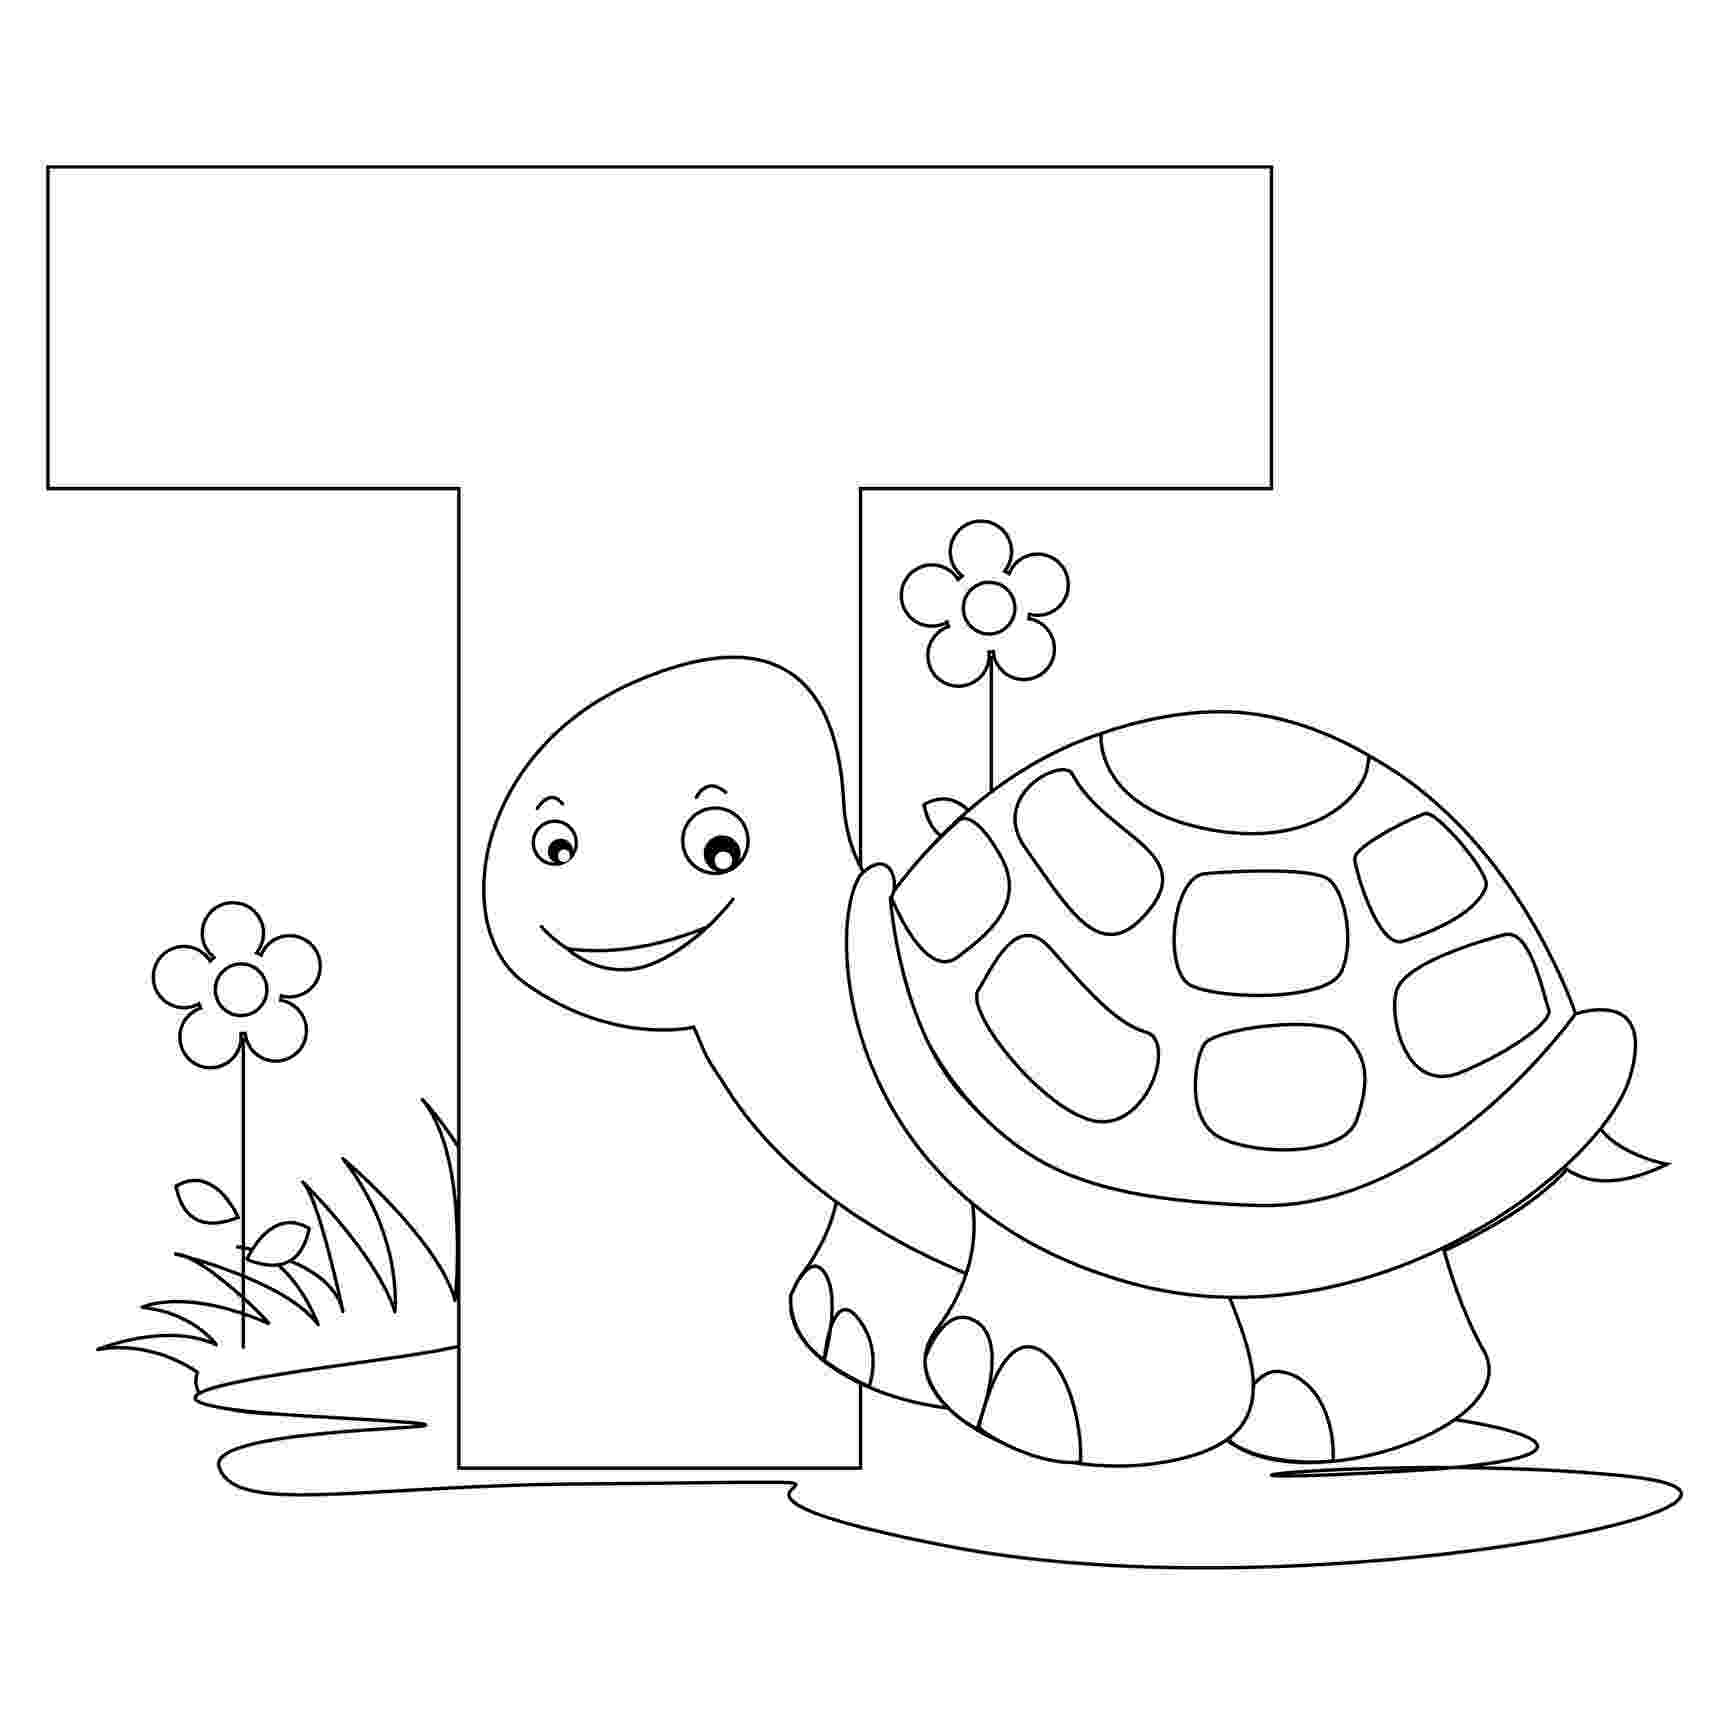 alphabet coloring free printable alphabet coloring pages for kids best coloring alphabet